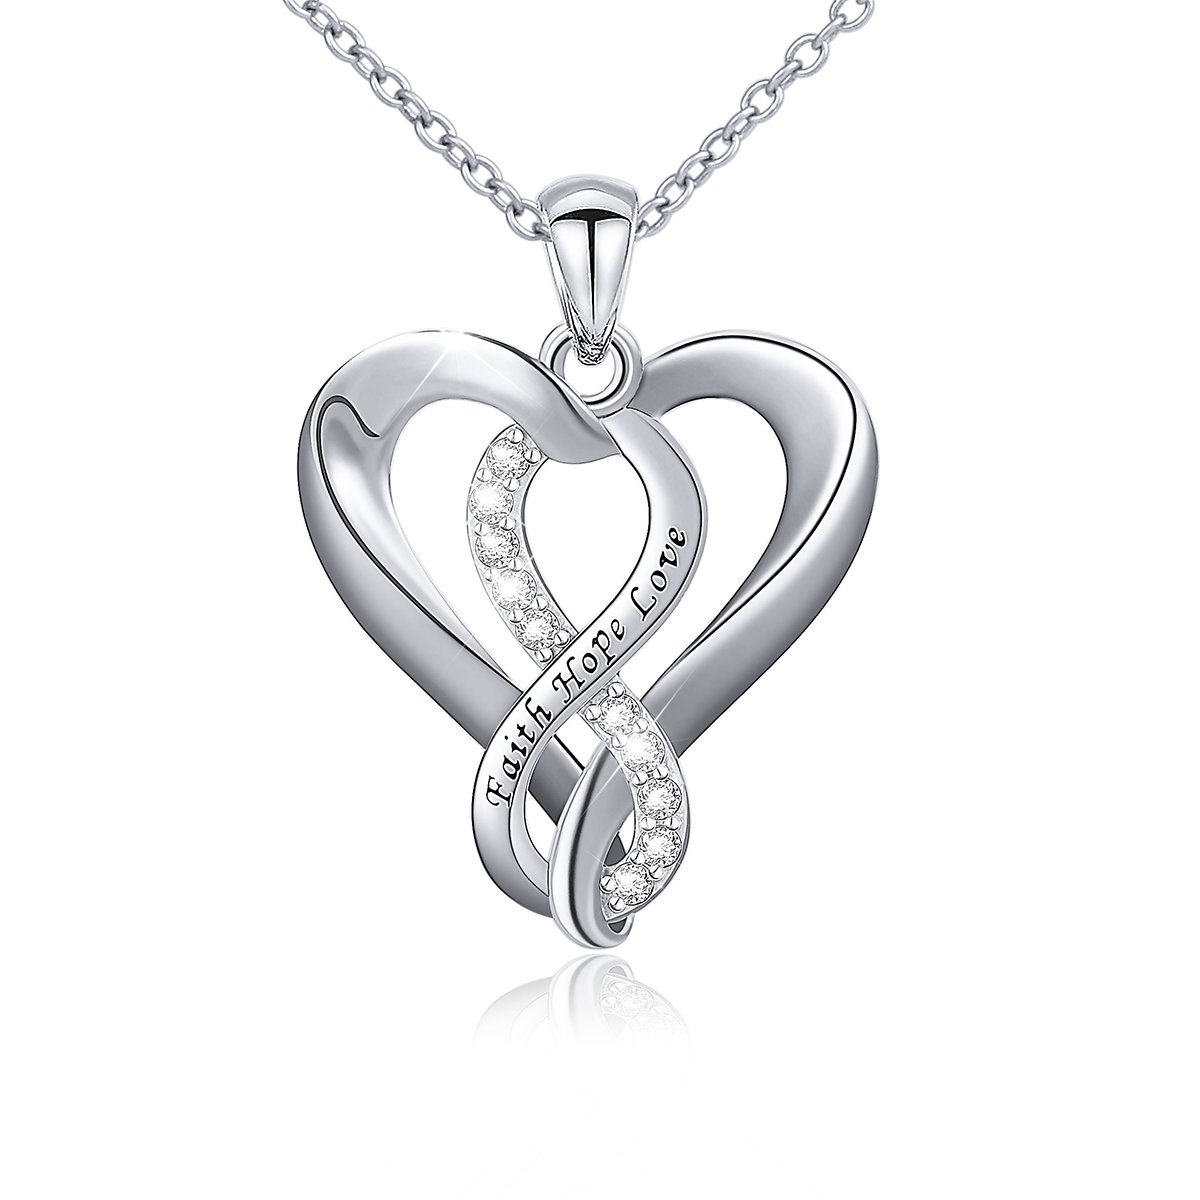 Faith Necklace 925 Sterling Silver Faith Hope Love Infinity Heart Pendant Necklace for Women Girls,18''